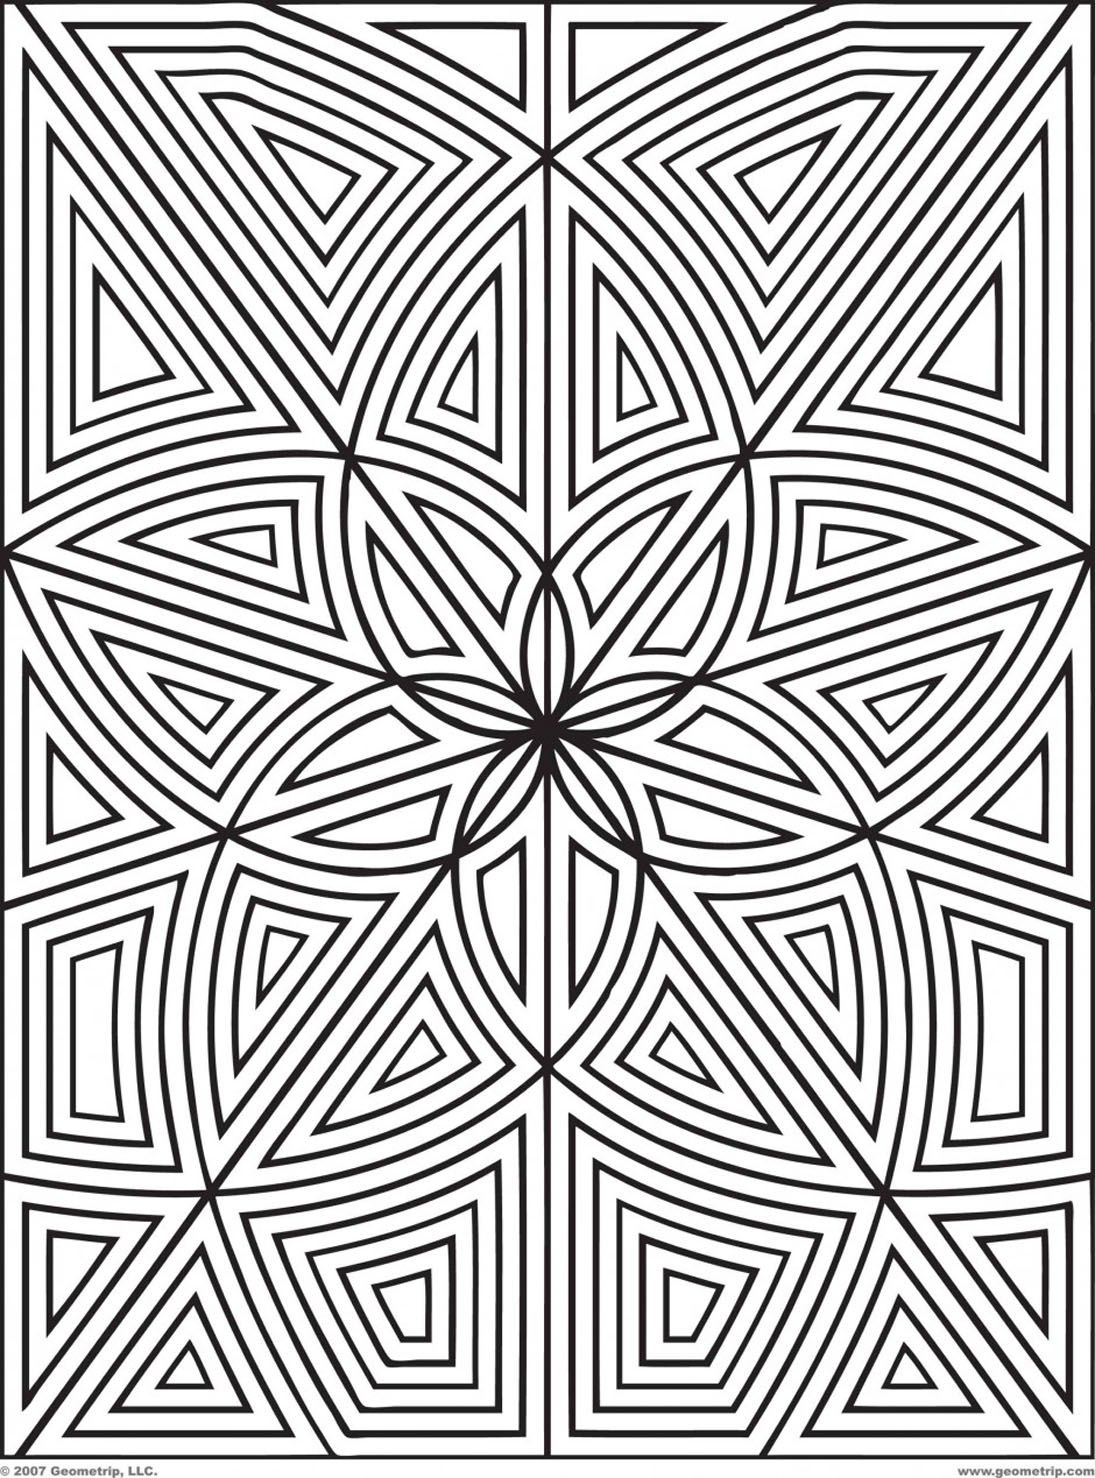 To print this free coloring page coloringmazezen